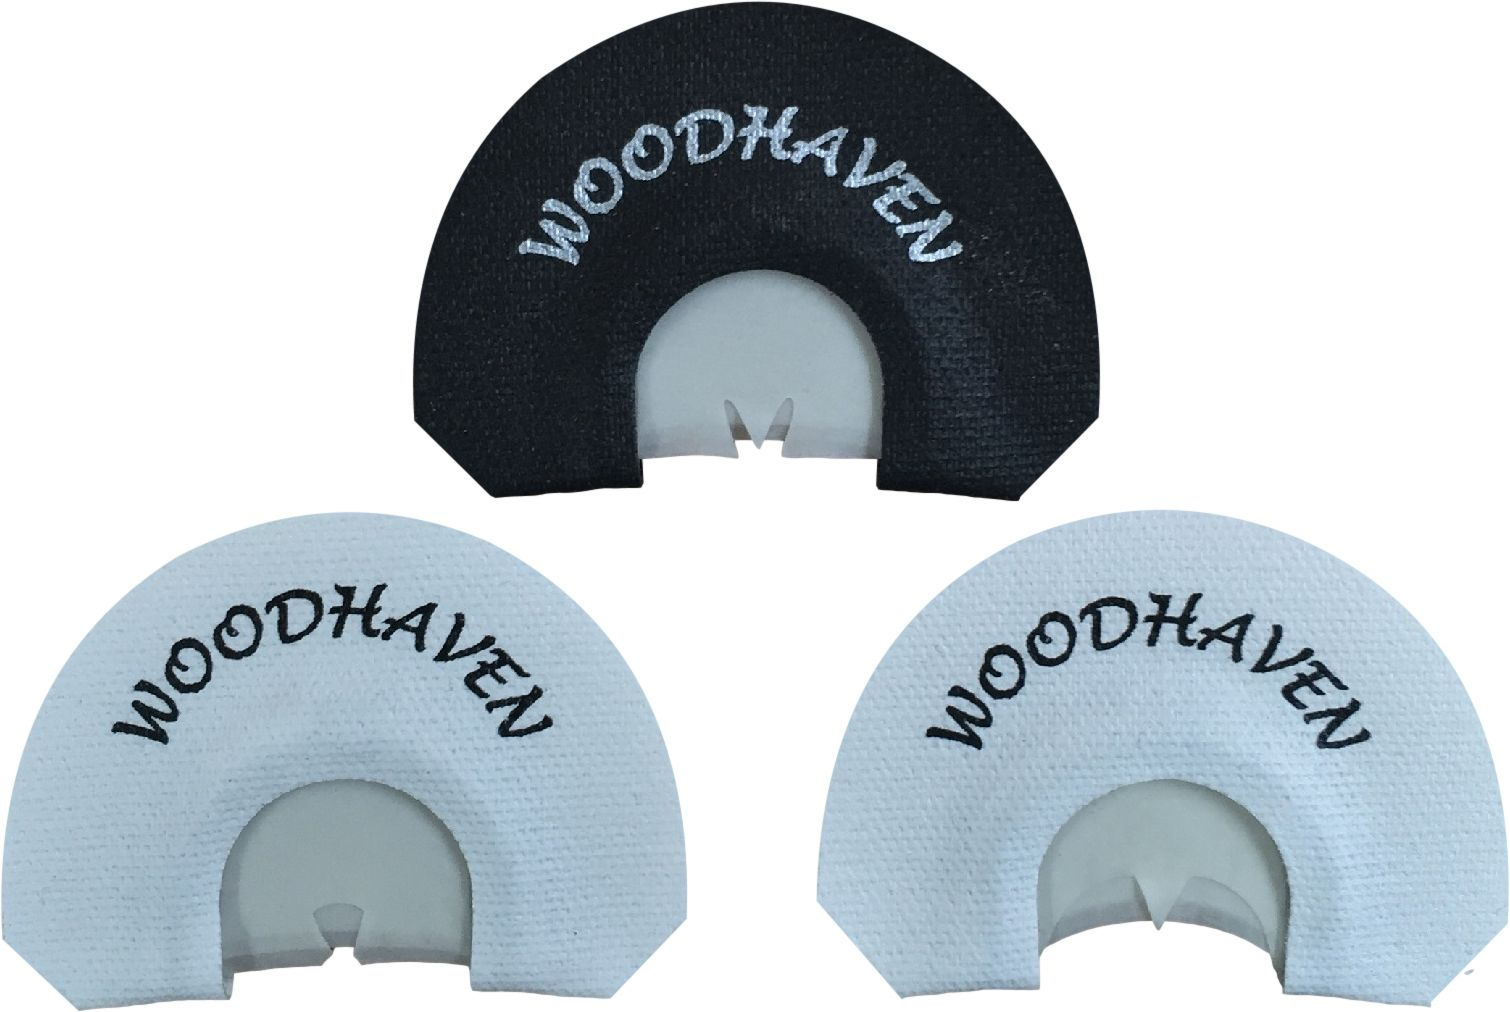 WoodHaven Custom Calls Simple Series Mouth Turkey Calls - 3 Pack, Size: One size thumbnail